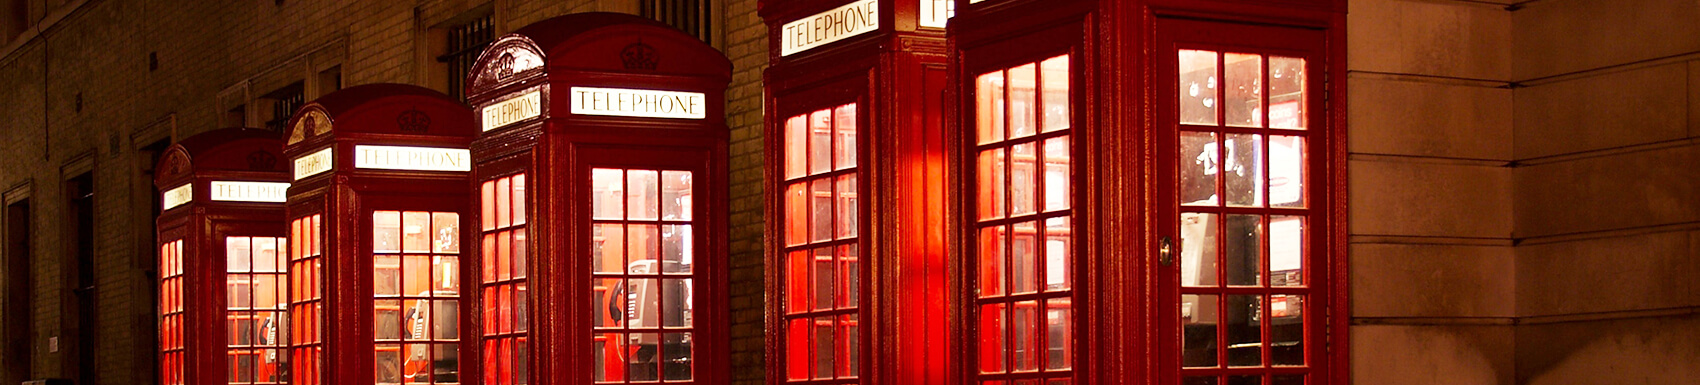 contact us - phone booths